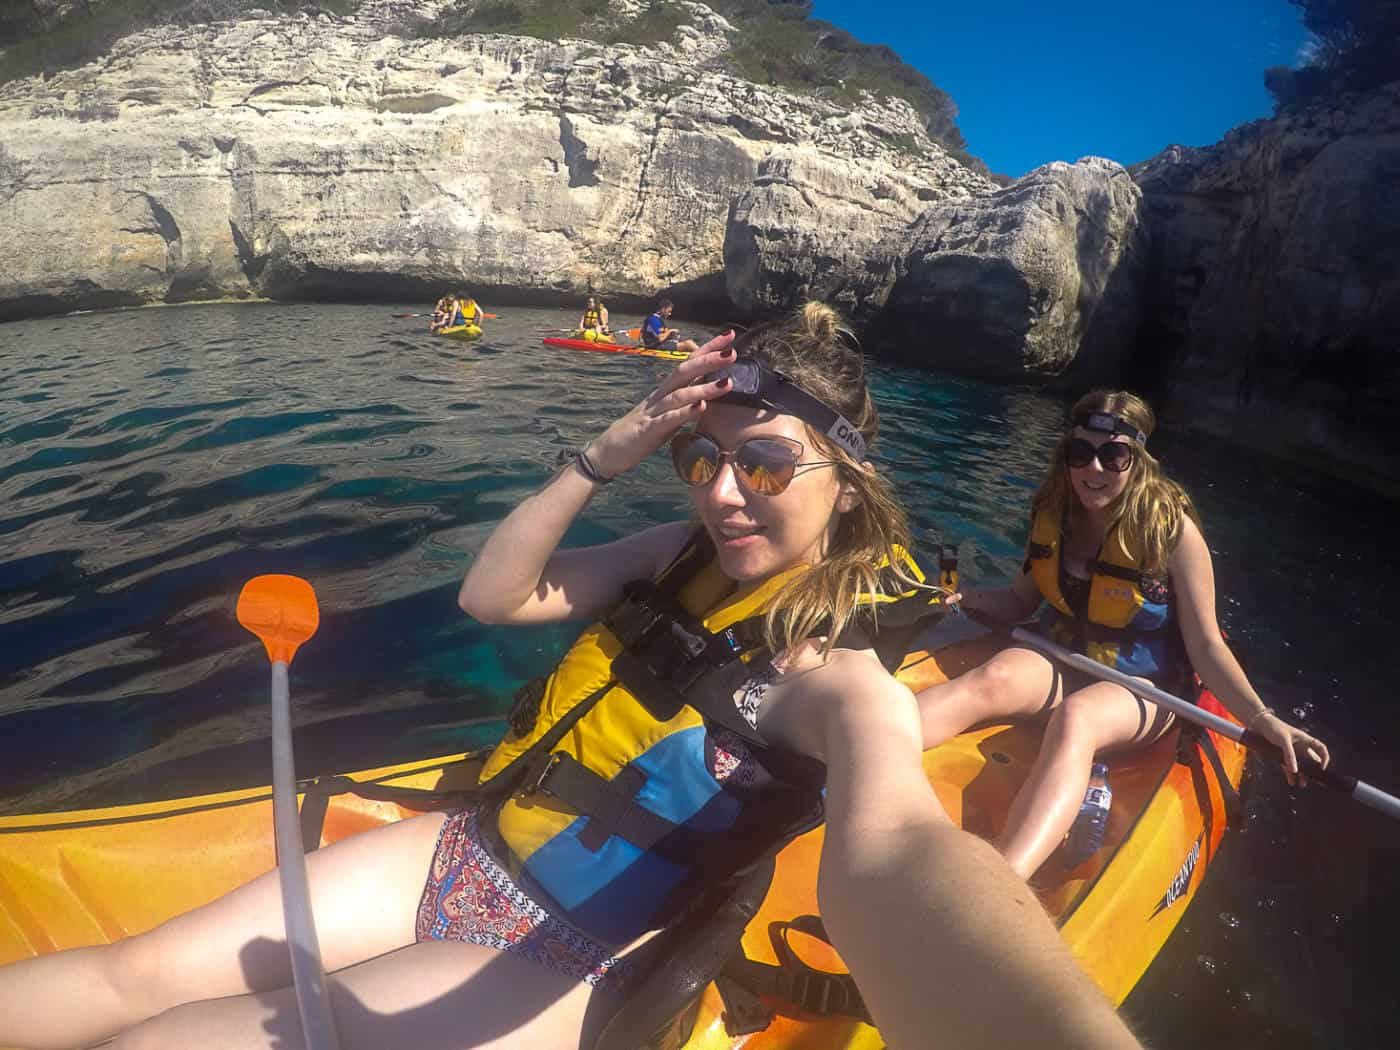 Kayaking in dragon cave menorca